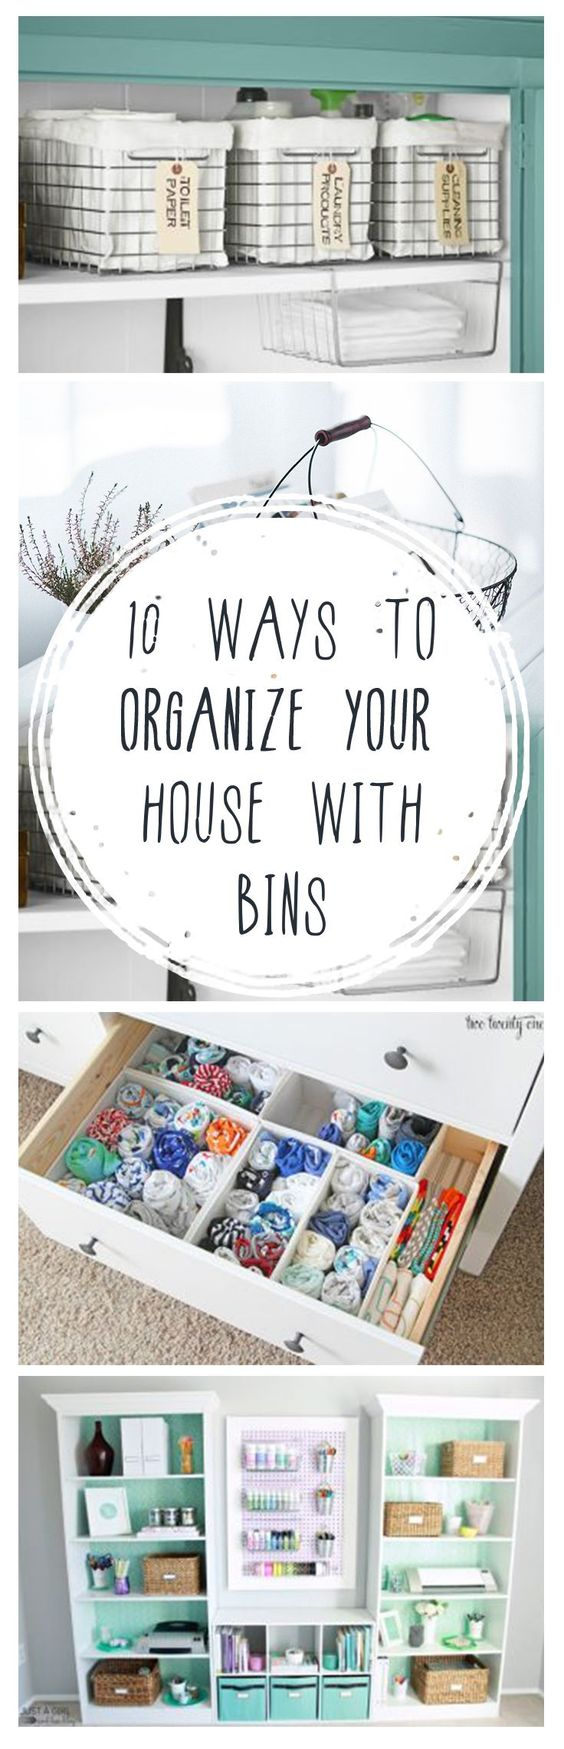 10 Ways To Organize Your House With Bins Cleaning Tips